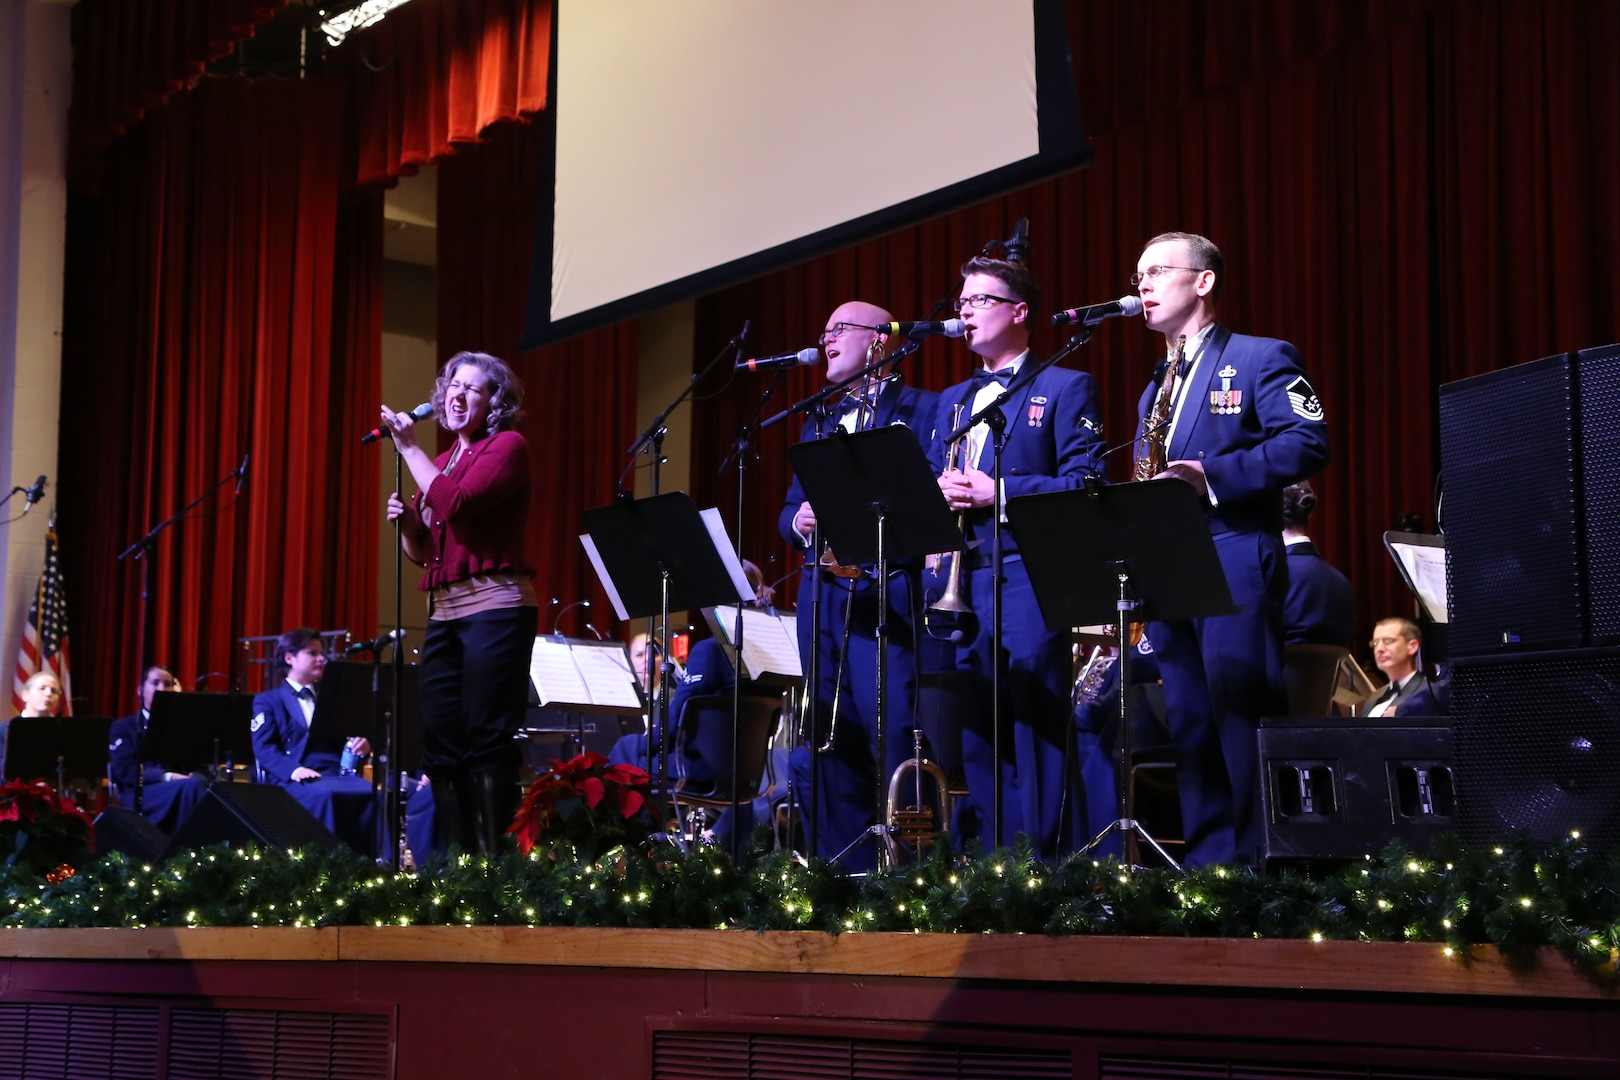 """Air Force Master Sgt. Nancy Poffenbarger, Air Force Band of the West vocalist, sings a variety of holiday songs with members of the Air Force Band of the West's musical ensemble """"Warhawk"""" Dec. 17 at the Joint Base San Antonio-Lackland Bob Hope Theater. (U.S. Air Force photo by Airman 1st Class Lincoln Korver)"""